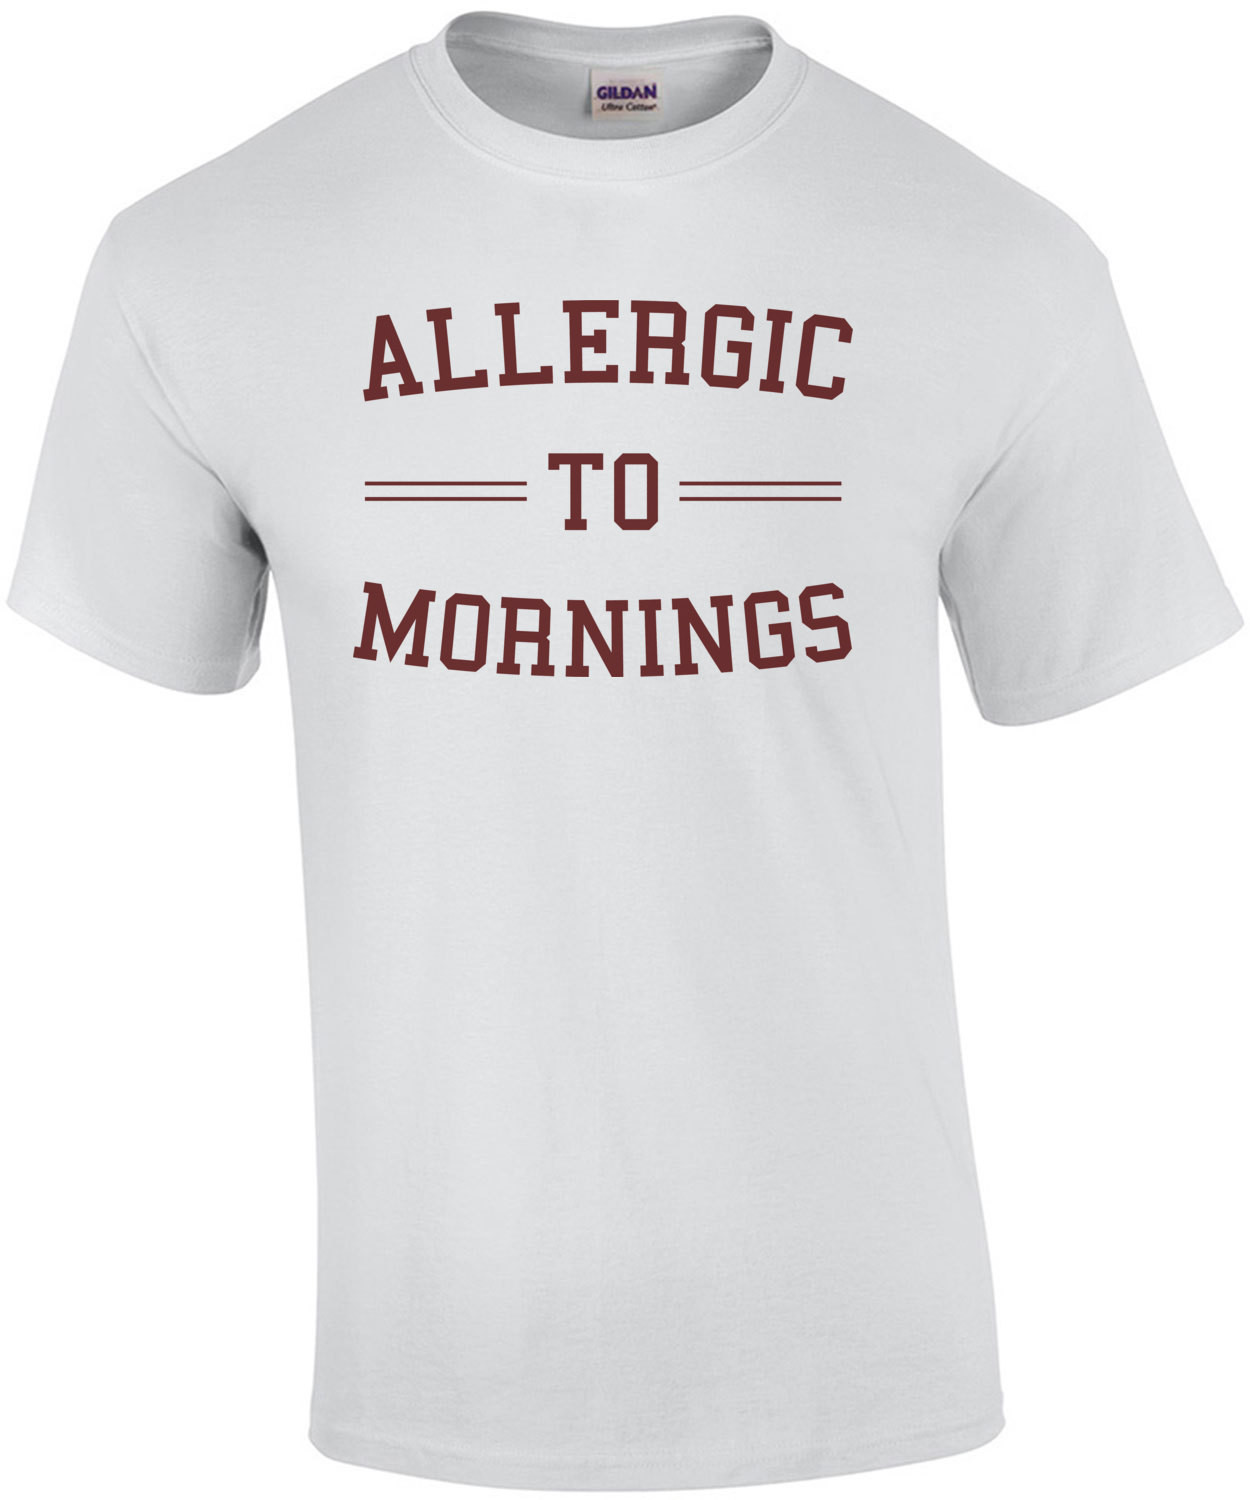 Allergic to mornings - sarcastic t-shirt